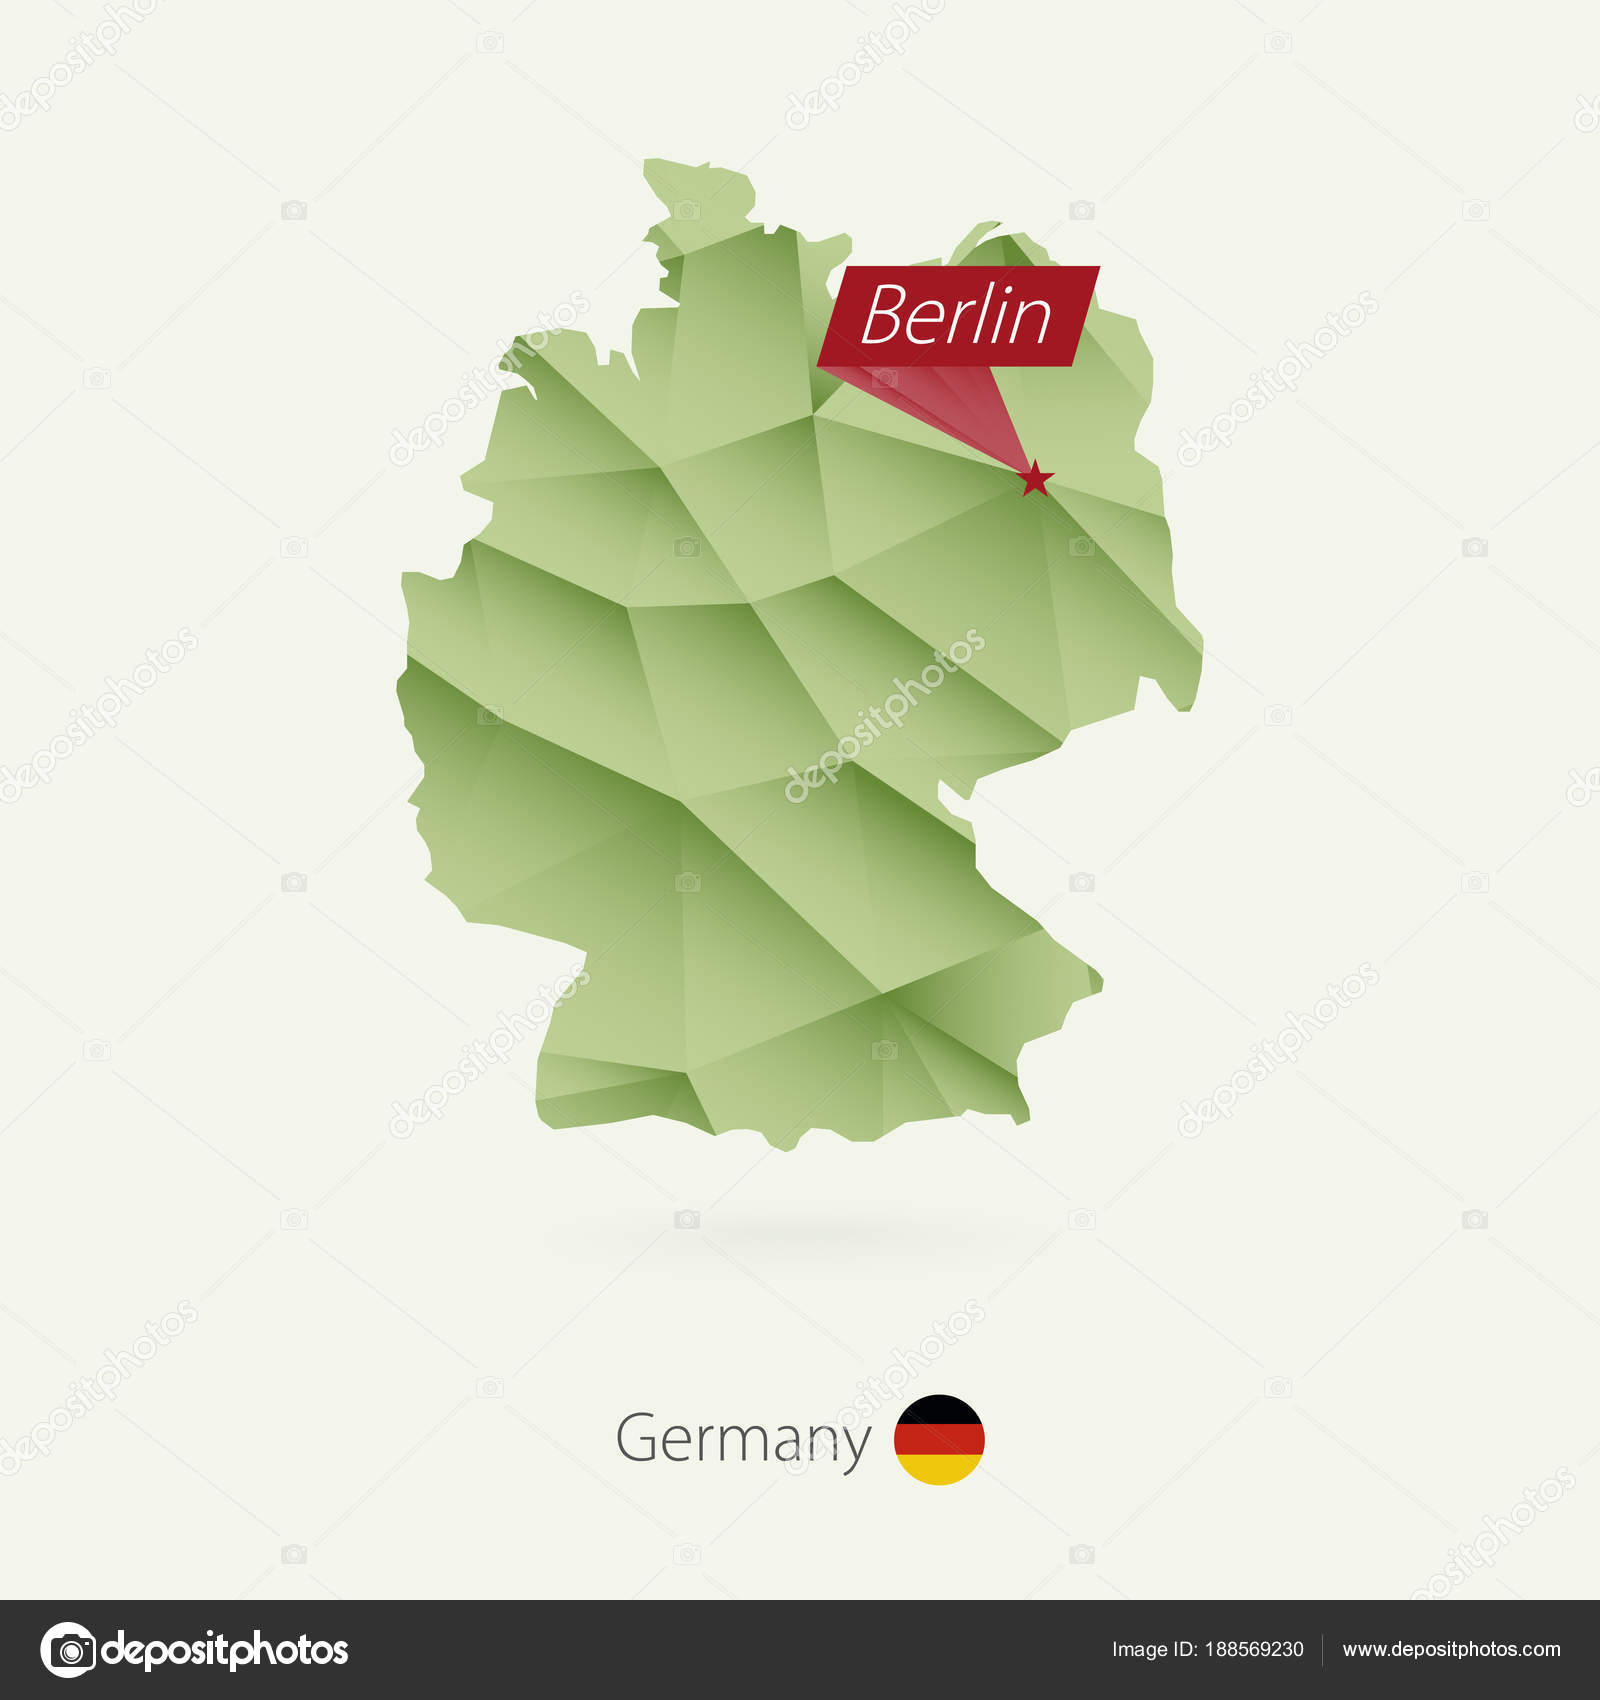 Capital Of Germany Map.Green Gradient Low Poly Map Of Germany With Capital Berlin Stock